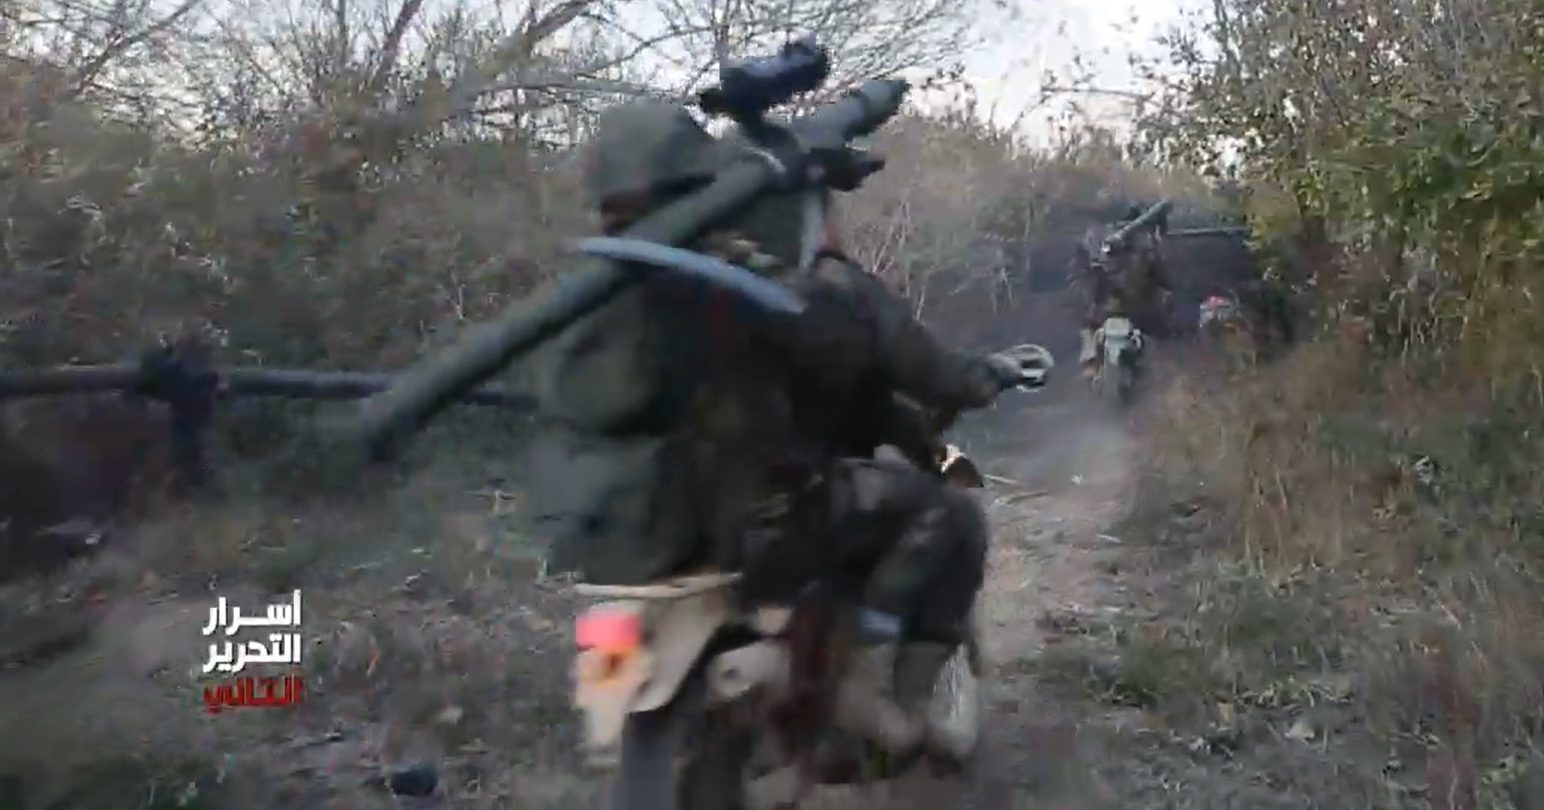 Russians Deliver MANPADs To Hezbollah?